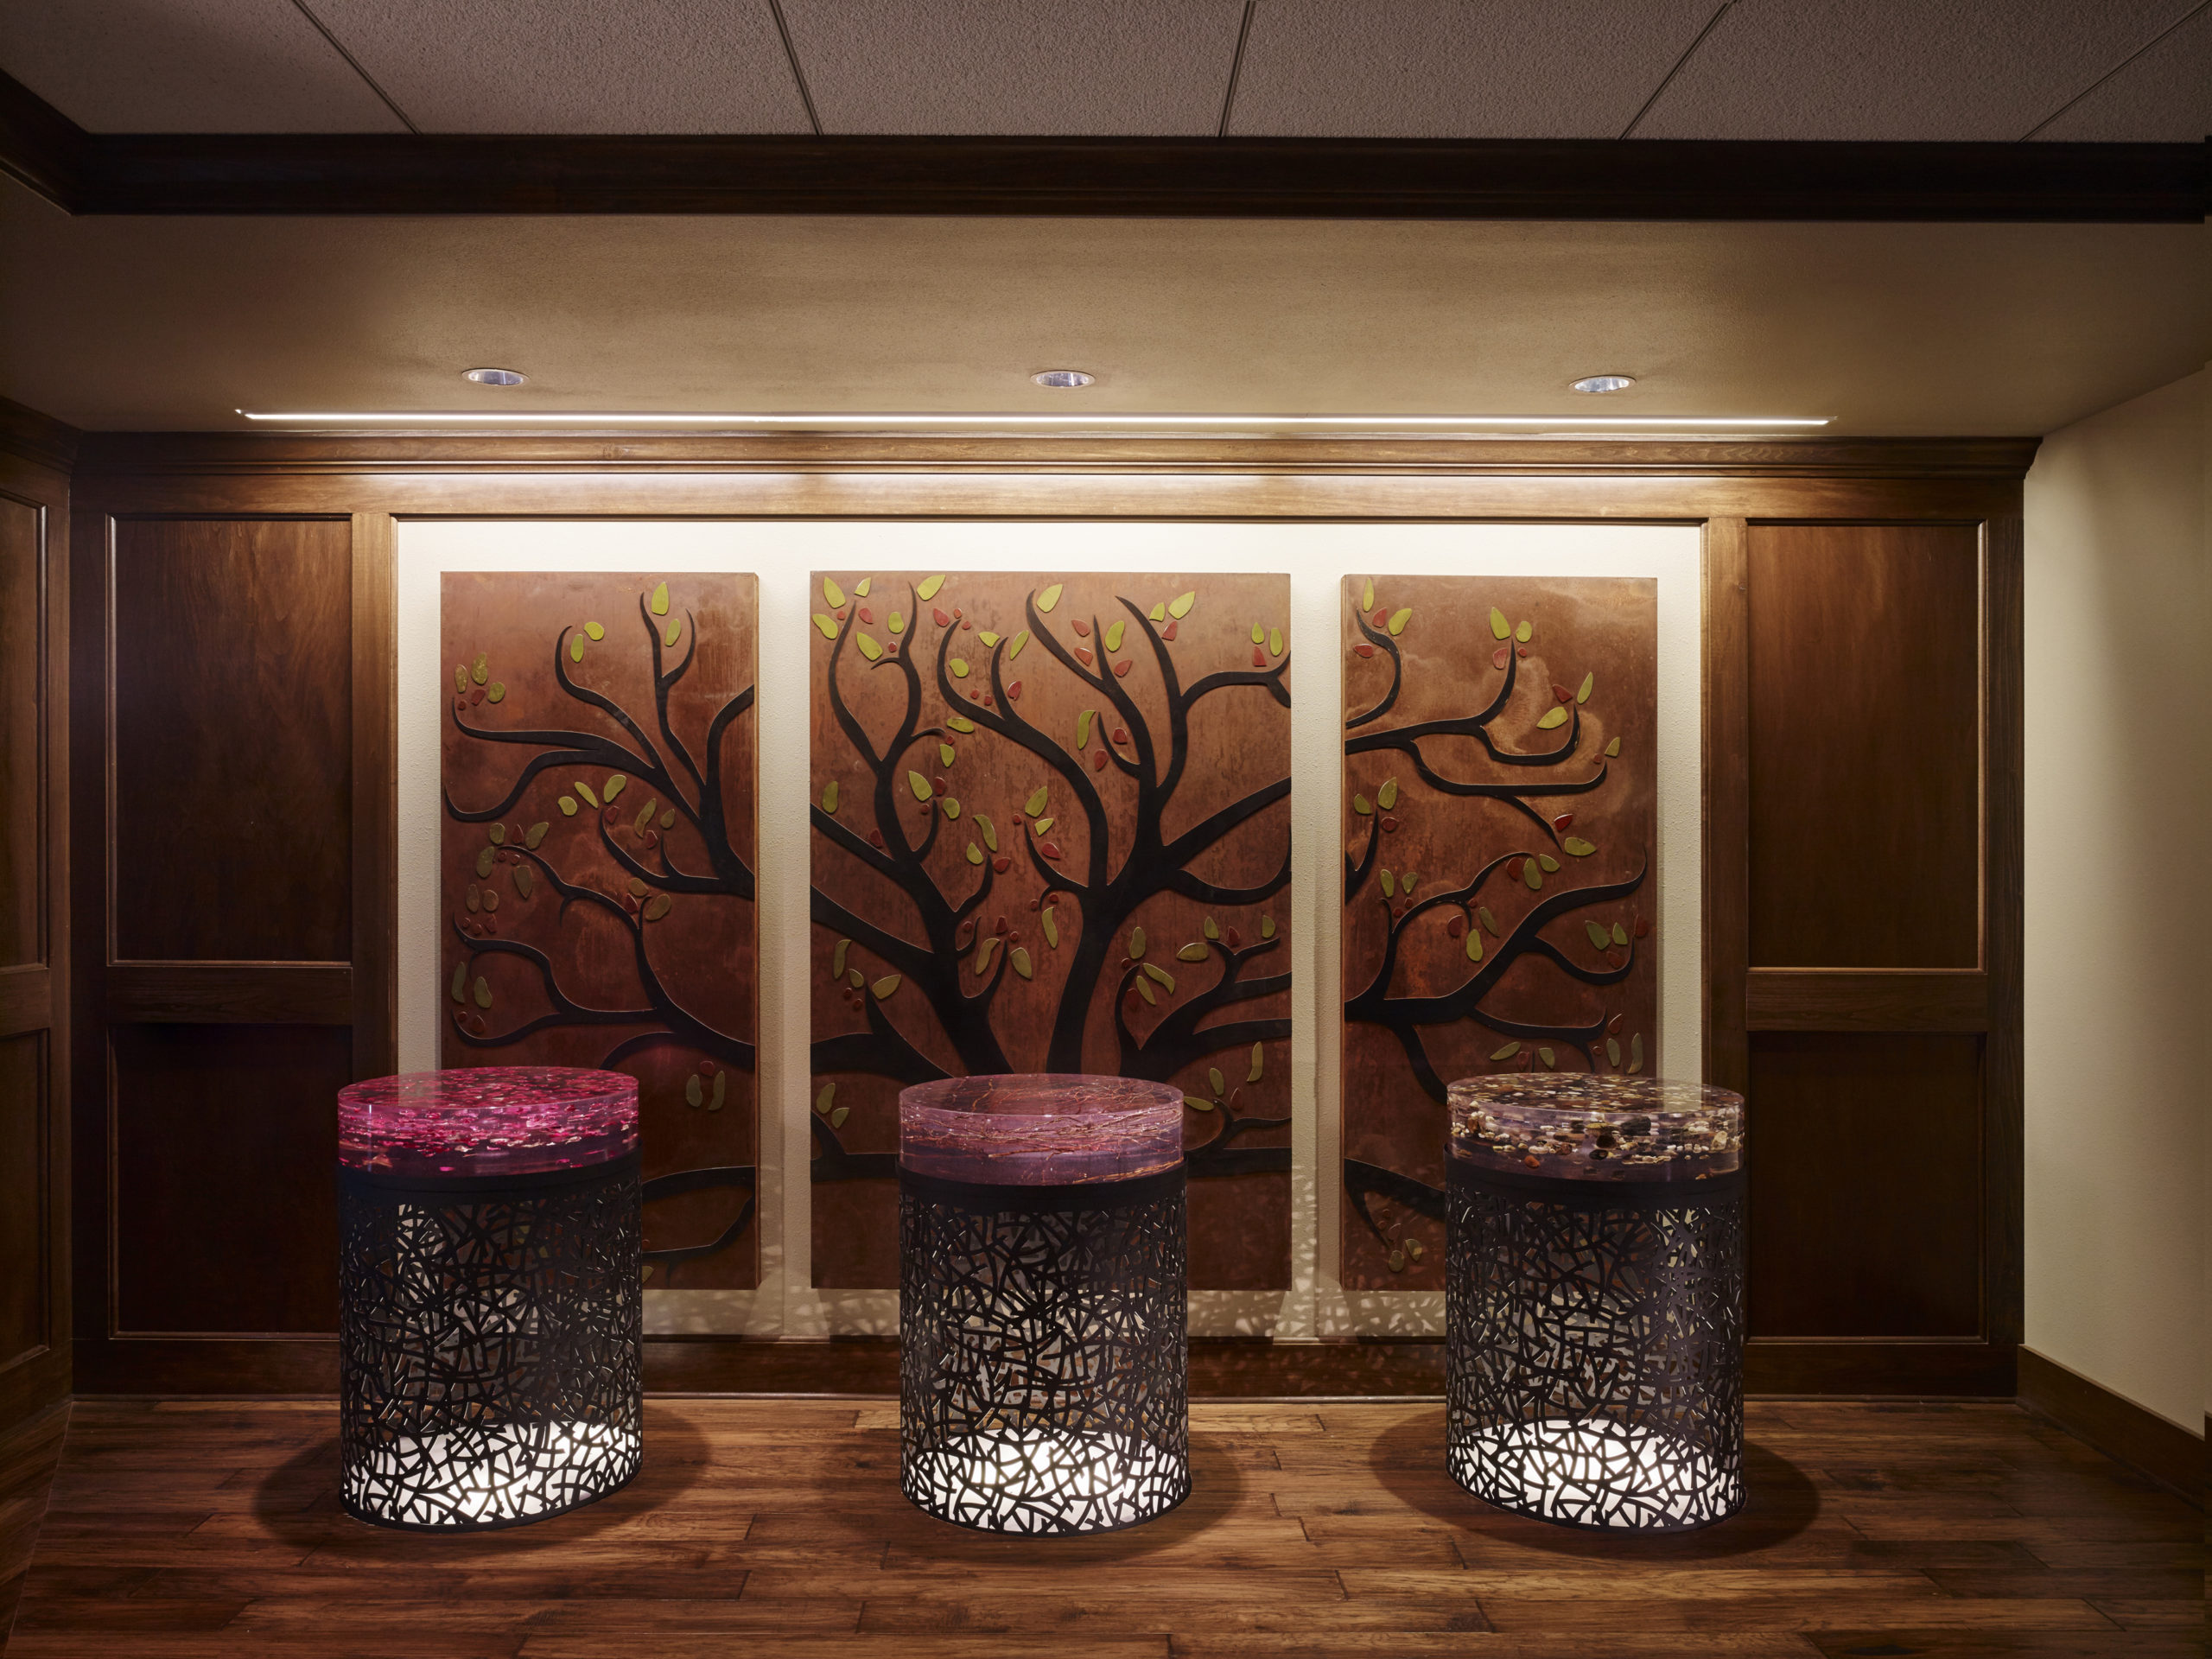 Lobby Pedestals with elements from nature (rose petals, twigs, lack pebbles) embedded into resin. The shaft with rose petals directs natural light to statue of Mary in Basement Chapel